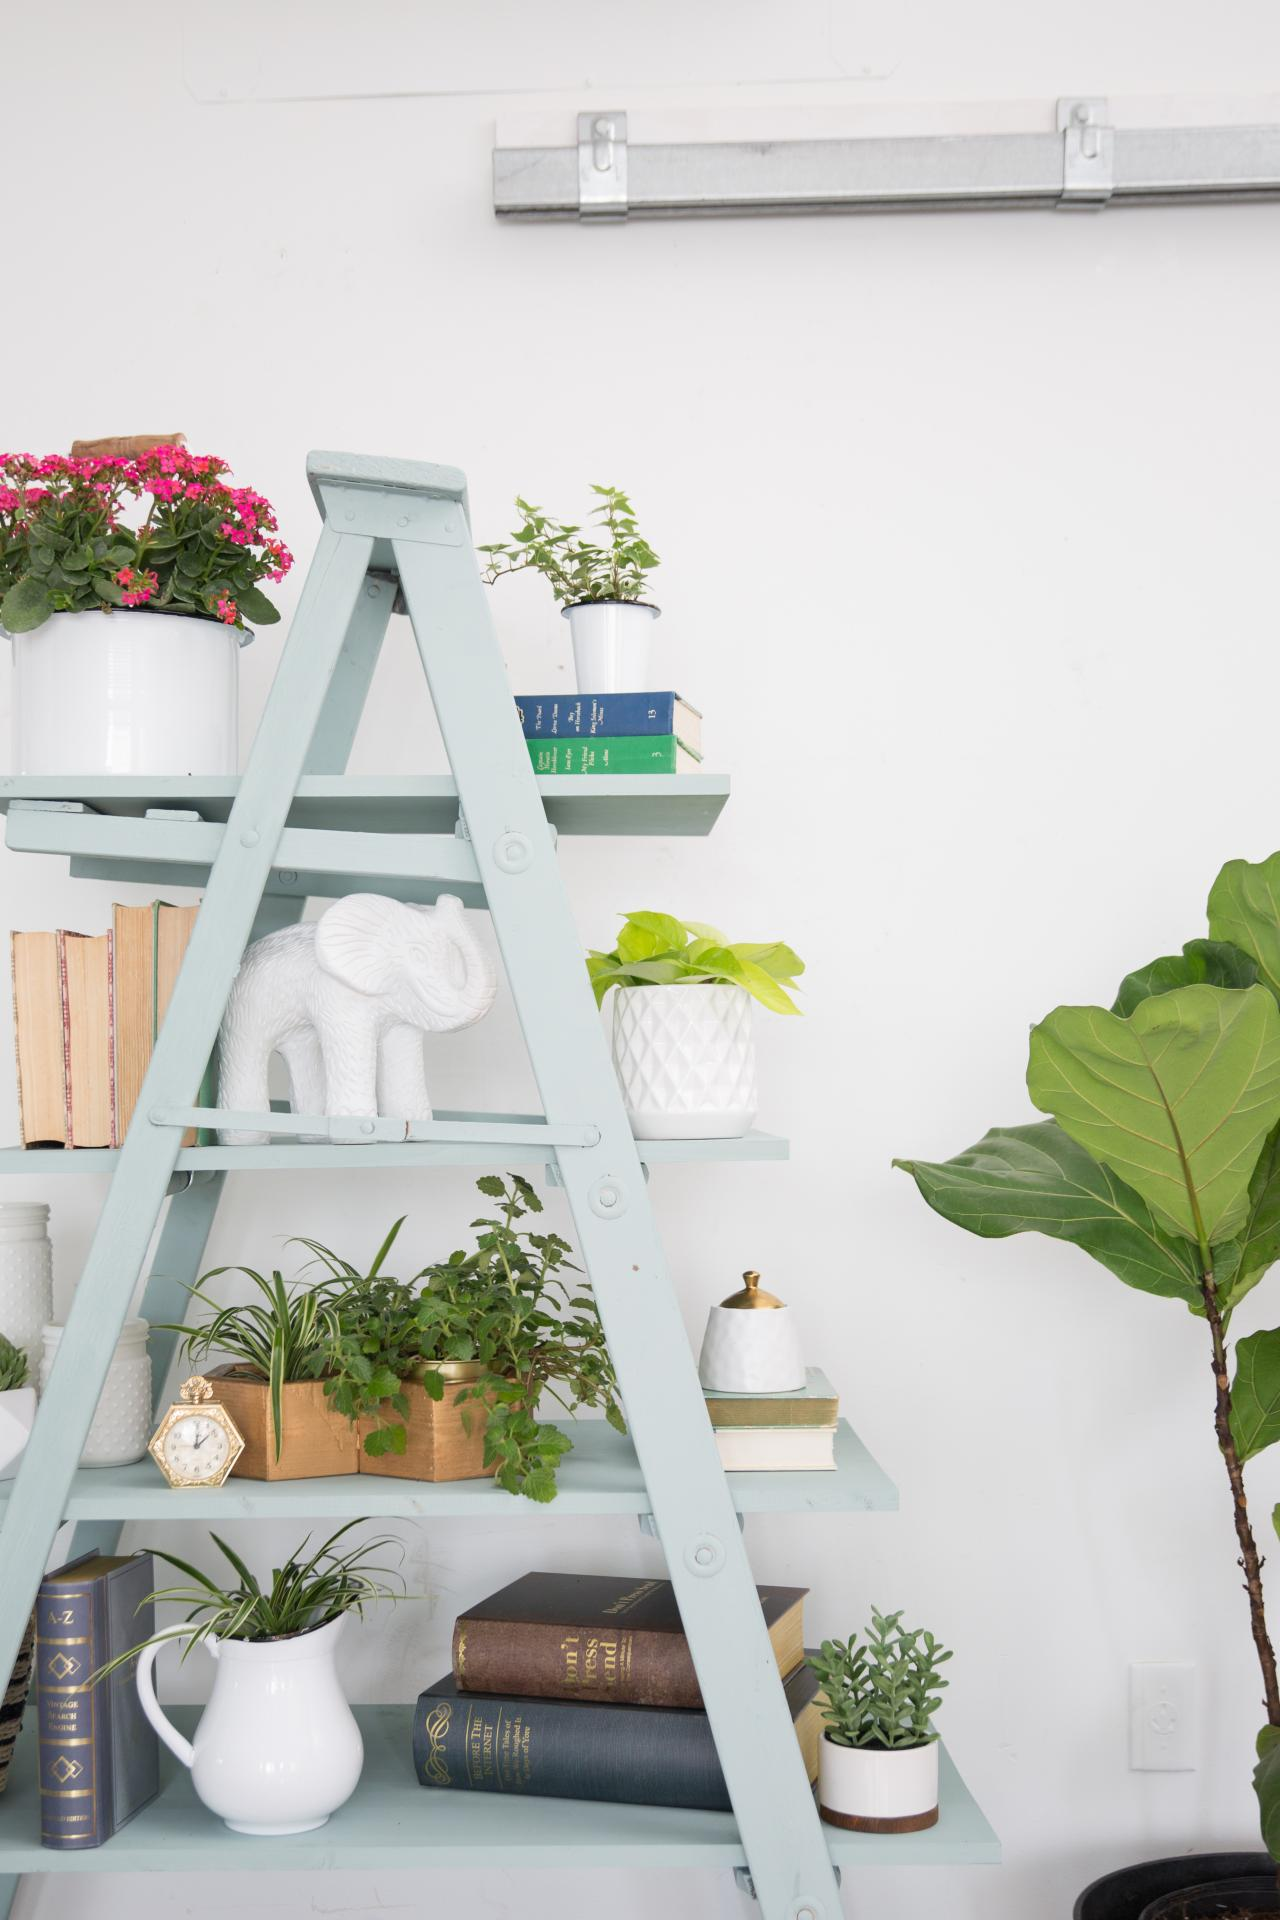 How to Create a DIY Ladder Shelf | HGTV